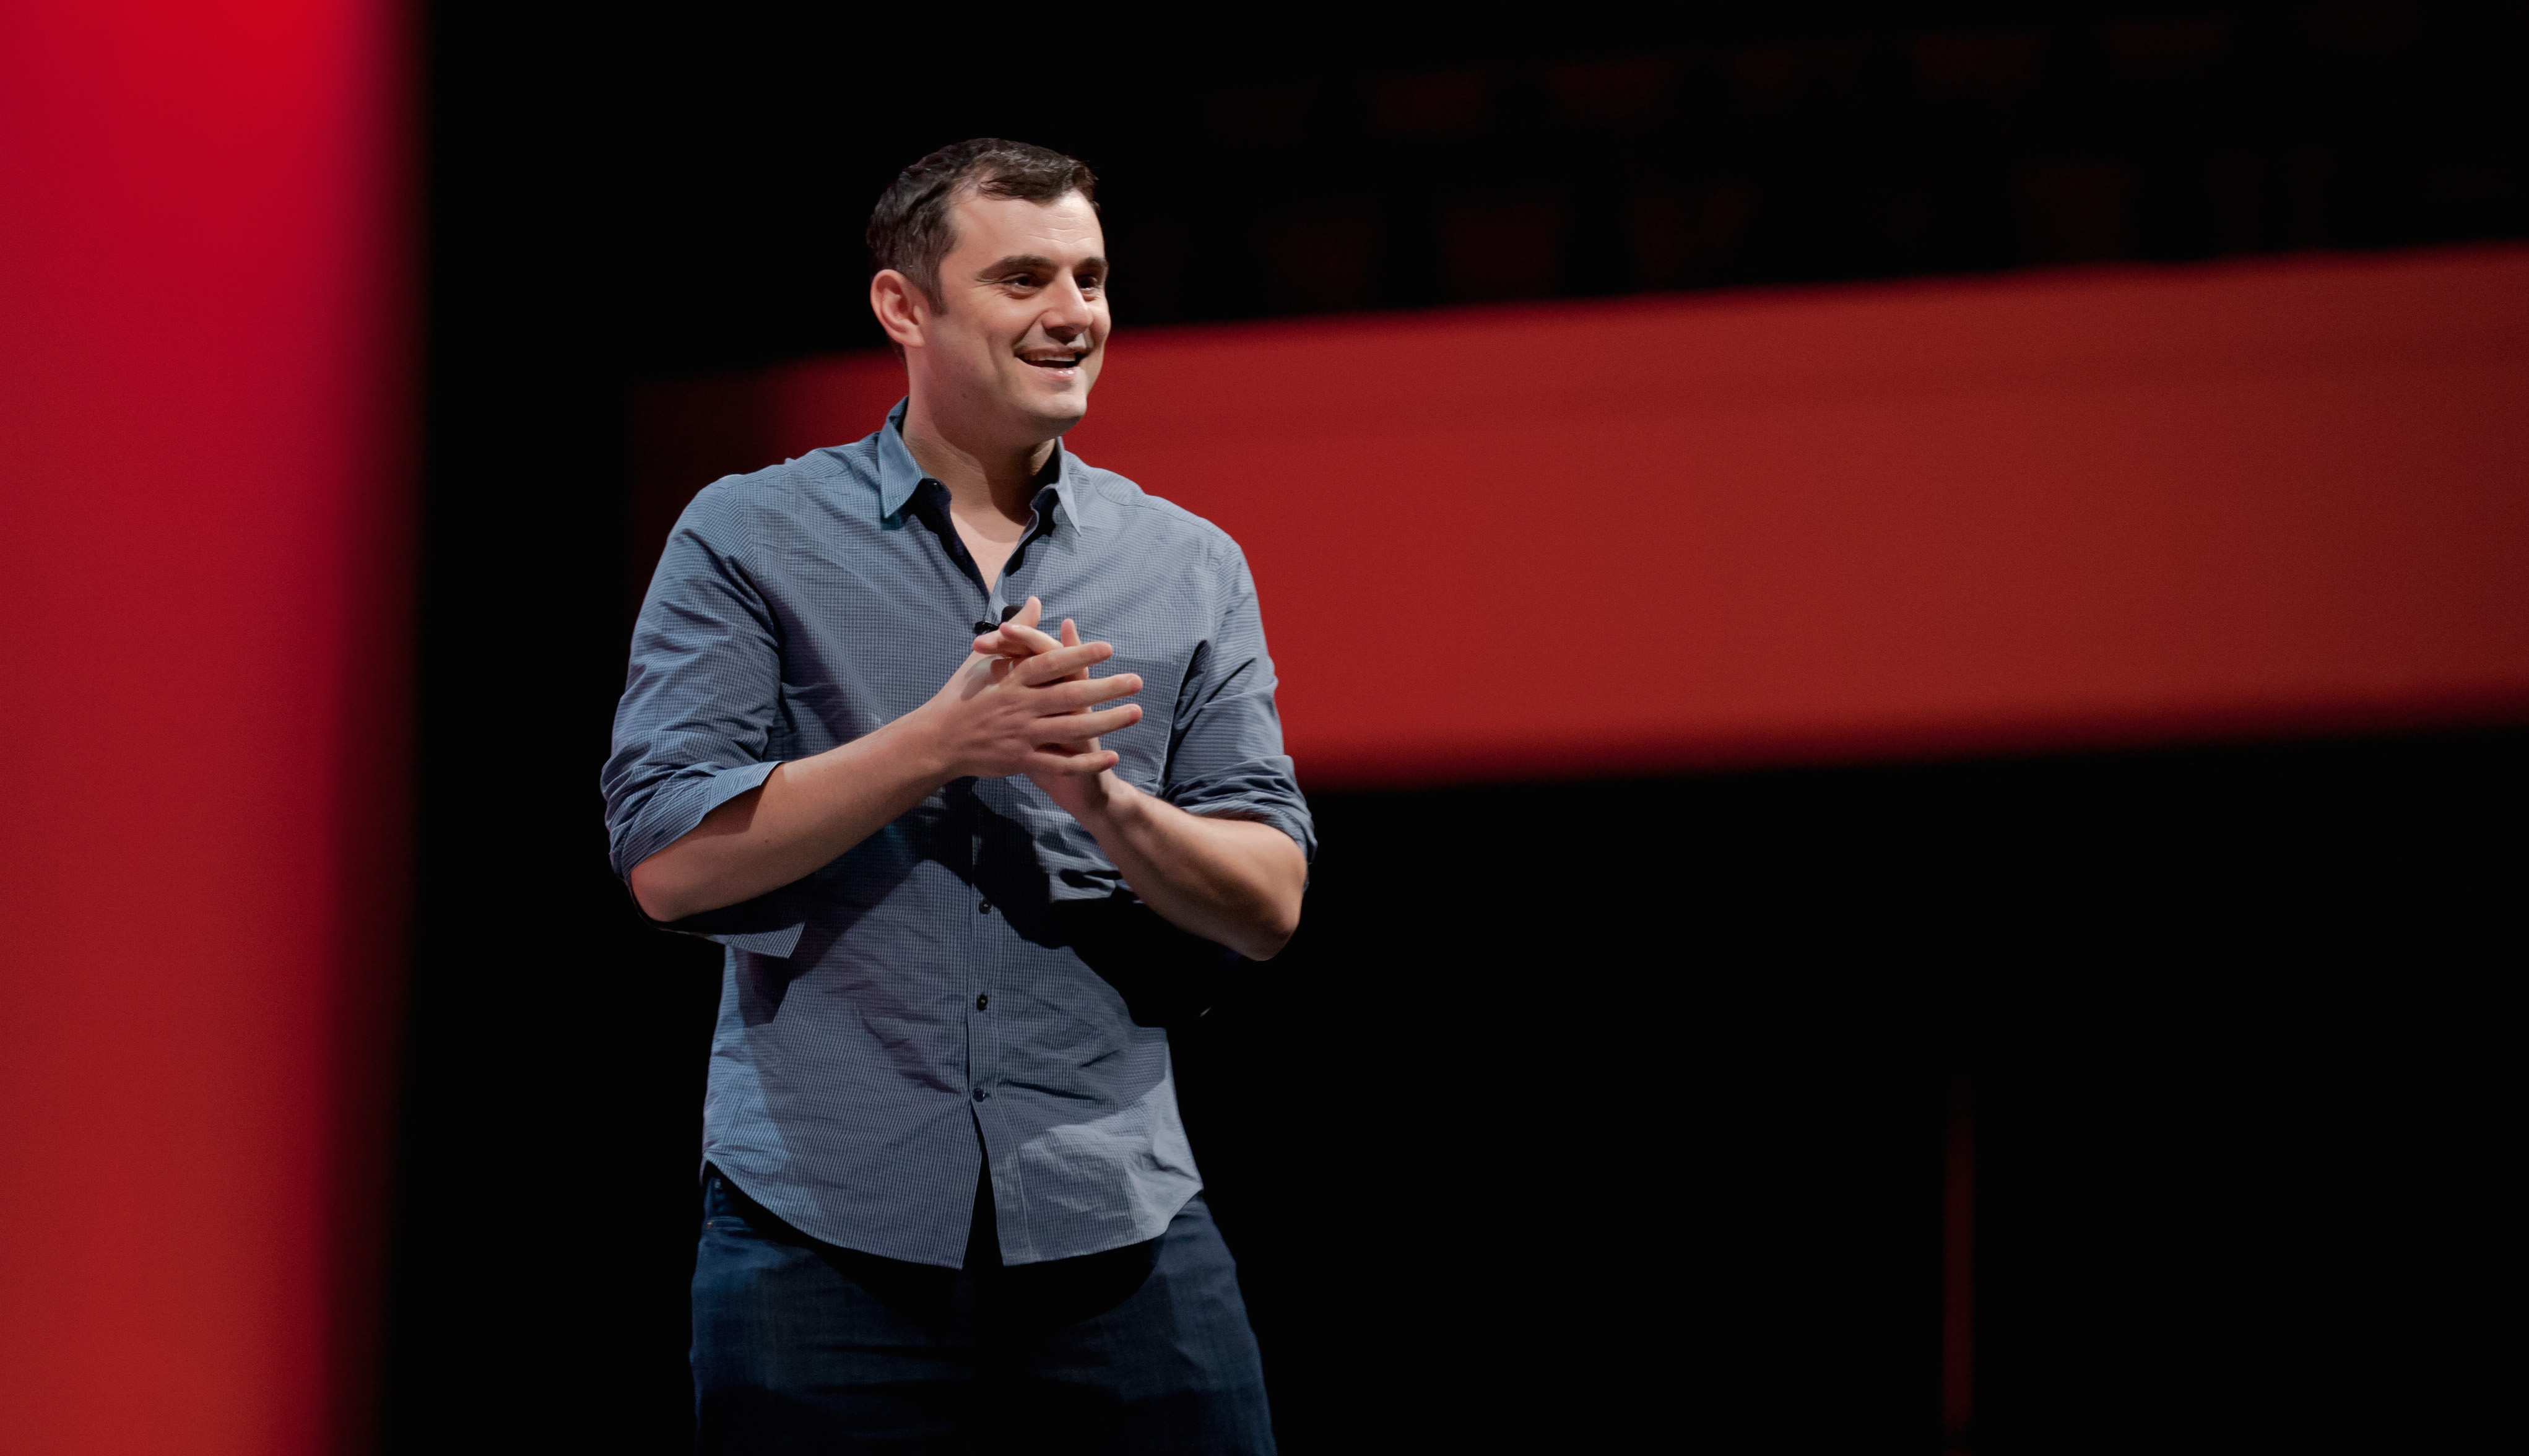 A listen to Gary Vynerchuk's TED talks will ignite the passion to do what you love, no excuses!